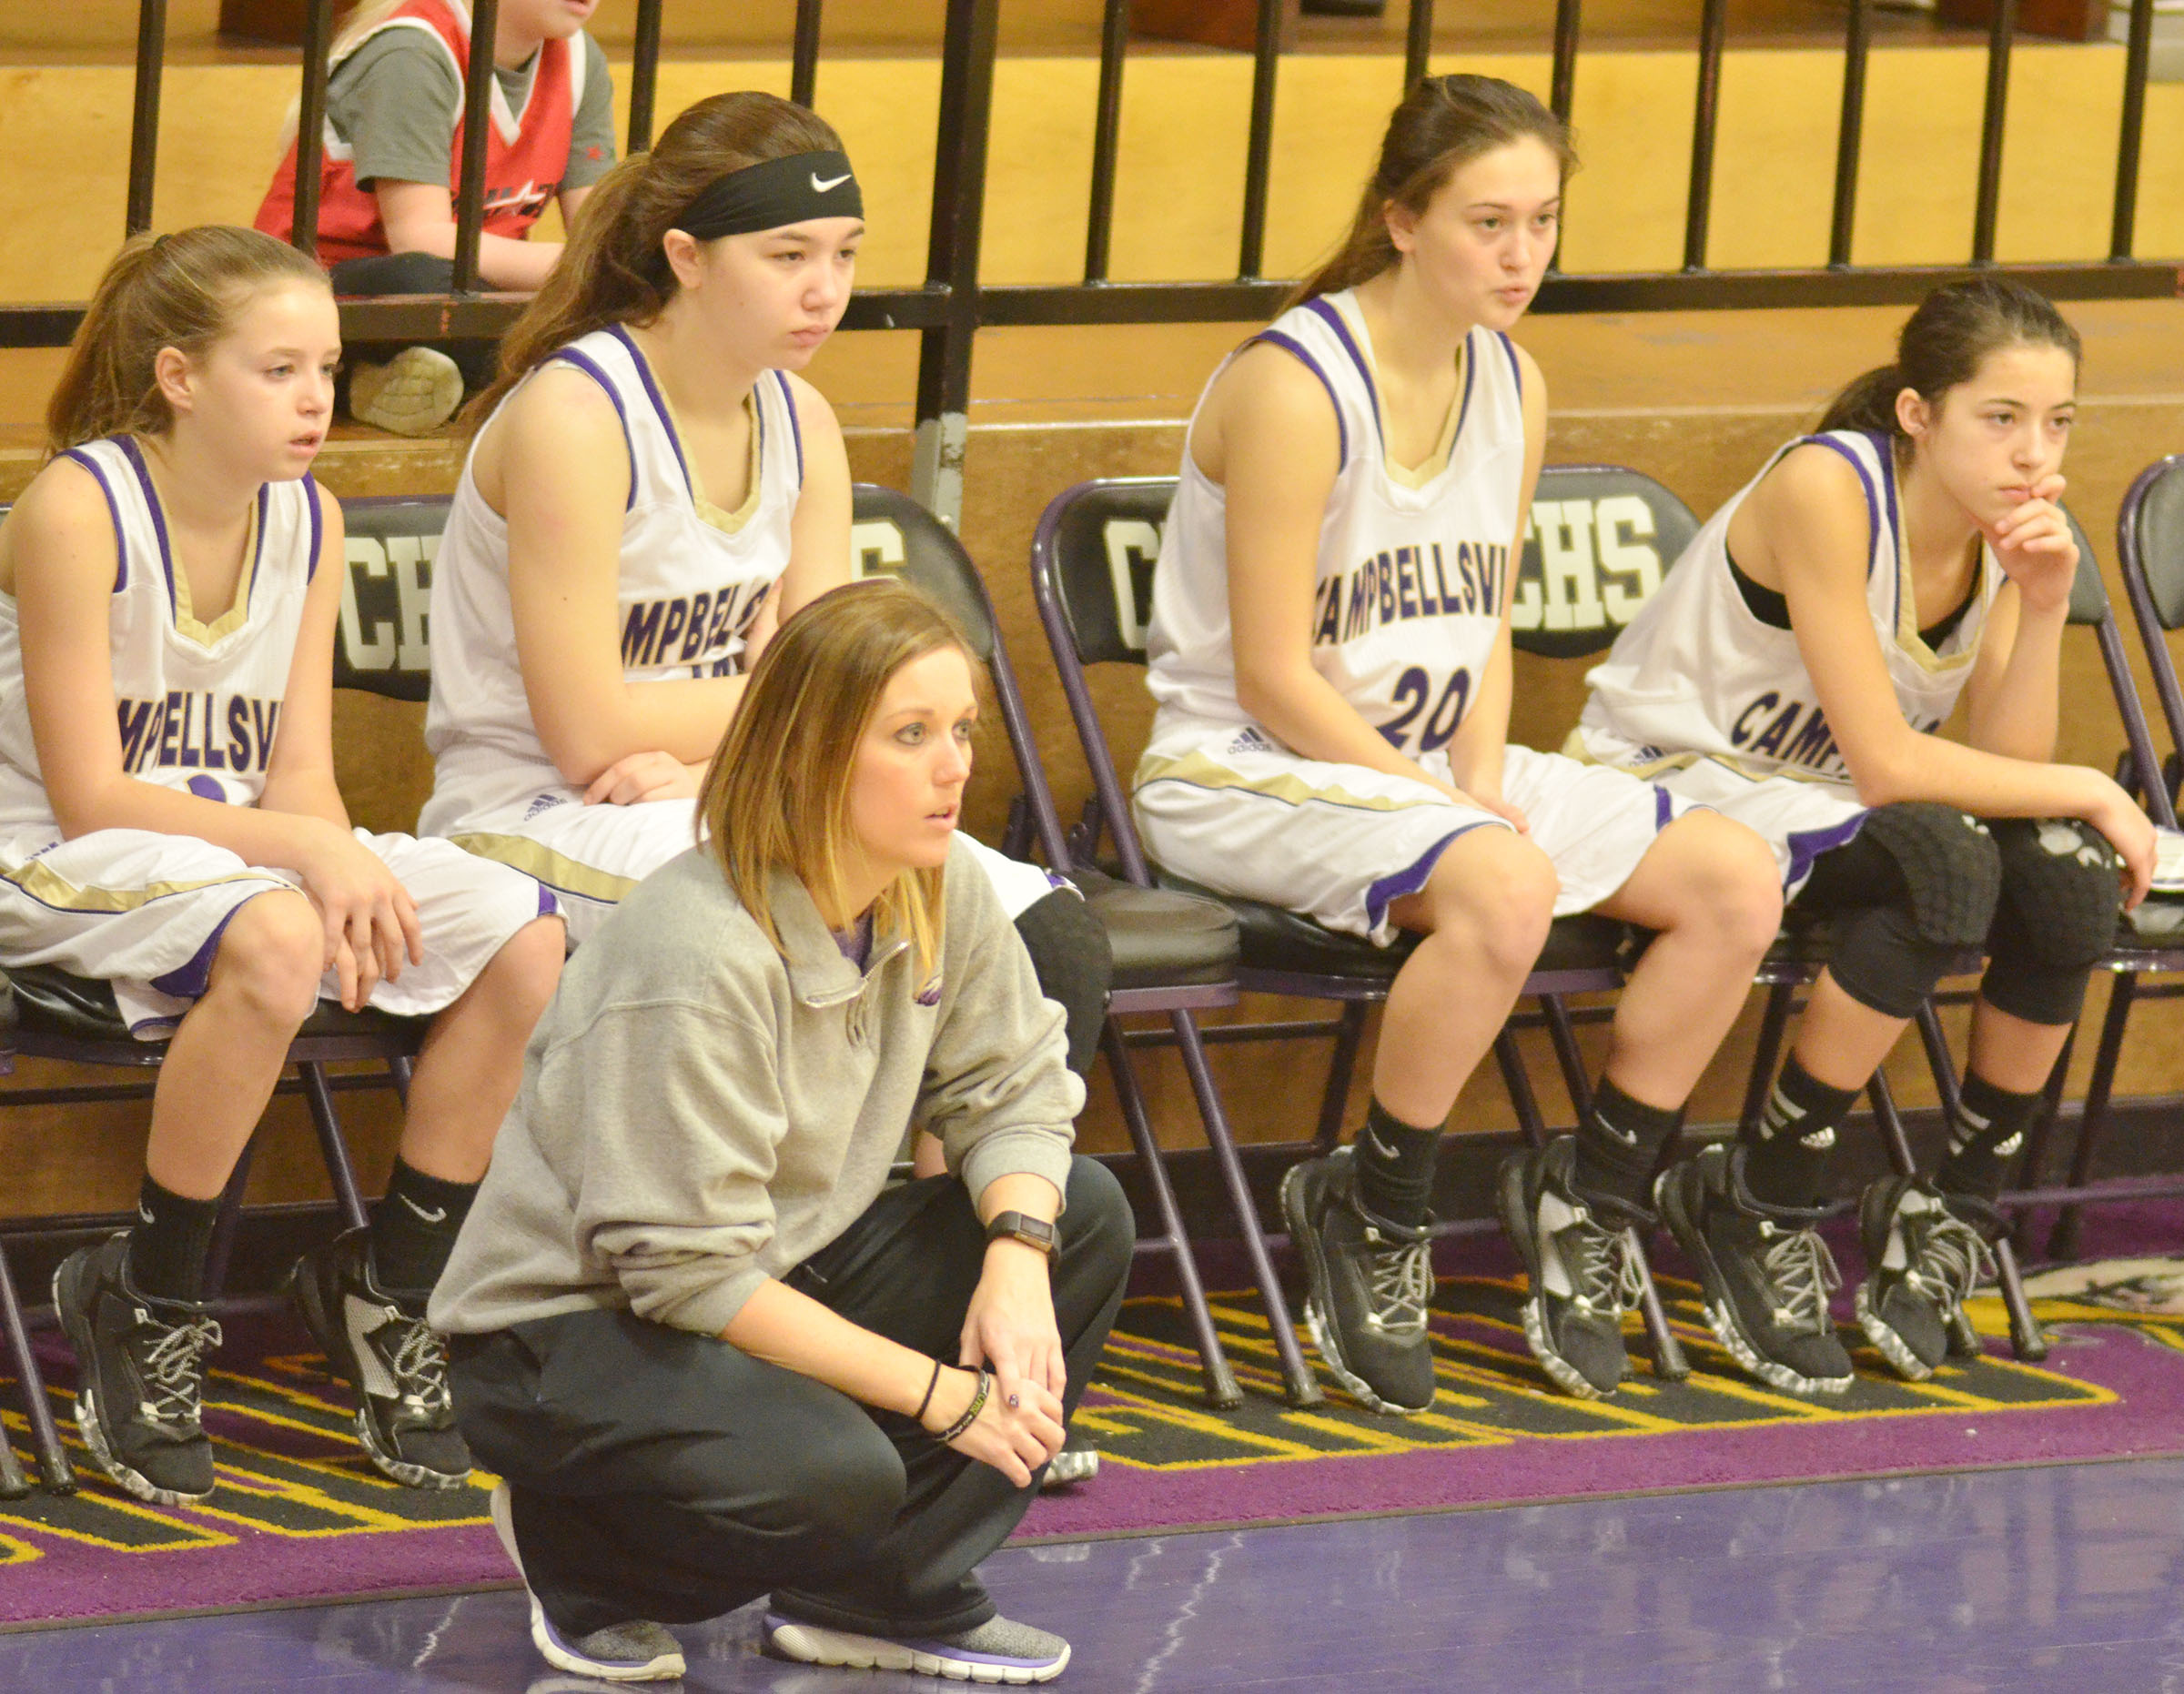 CHS girls' assistant basketball coach Natalia Warren watches as her team plays.